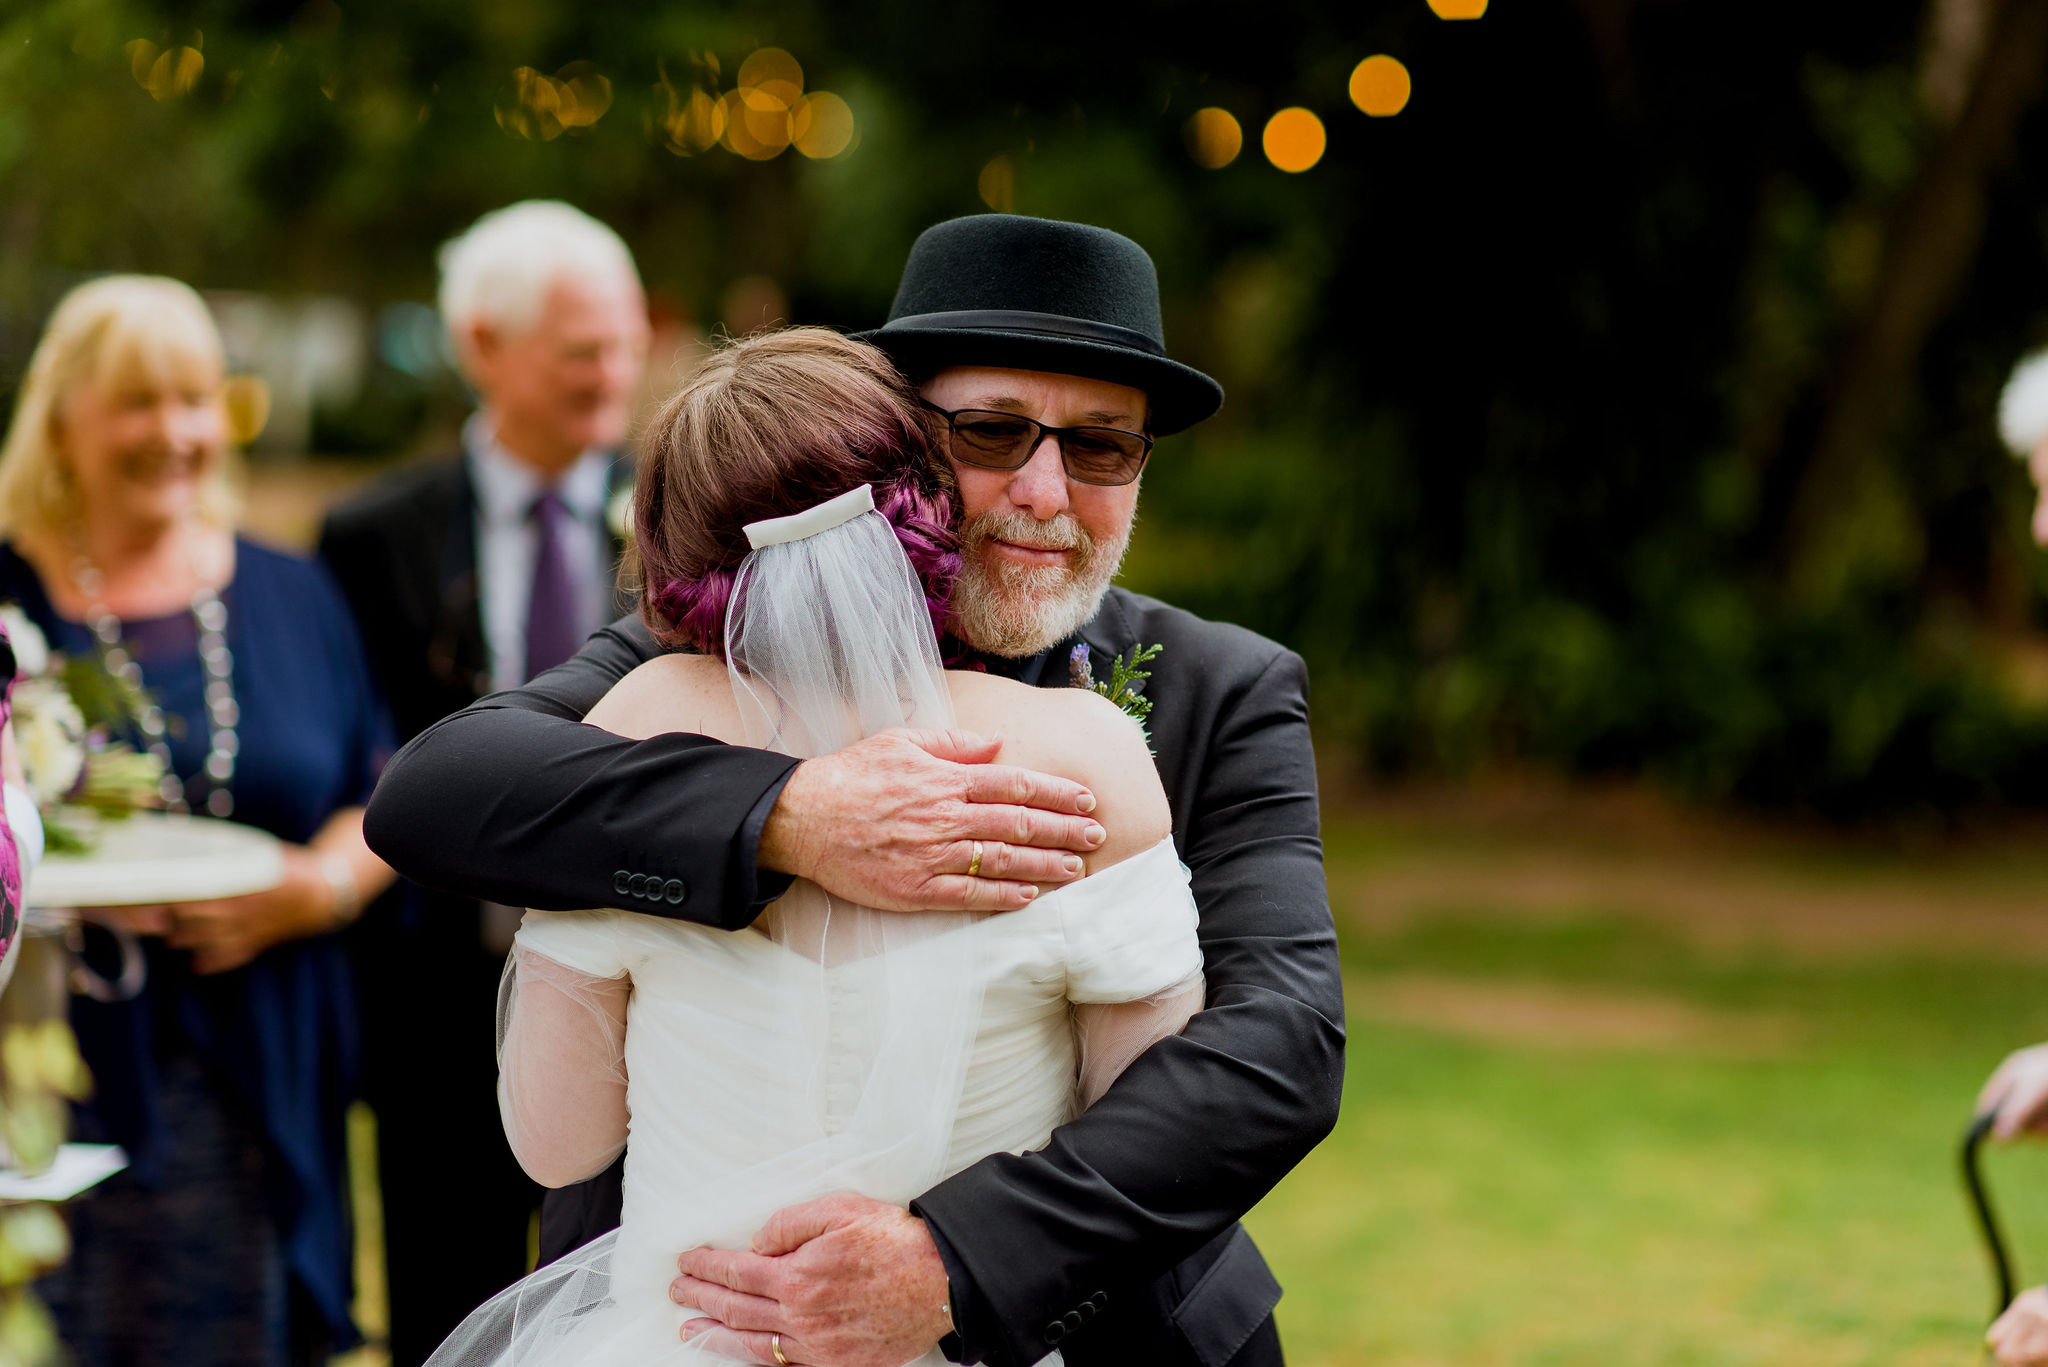 Father-of-the-bride embraces his daughter